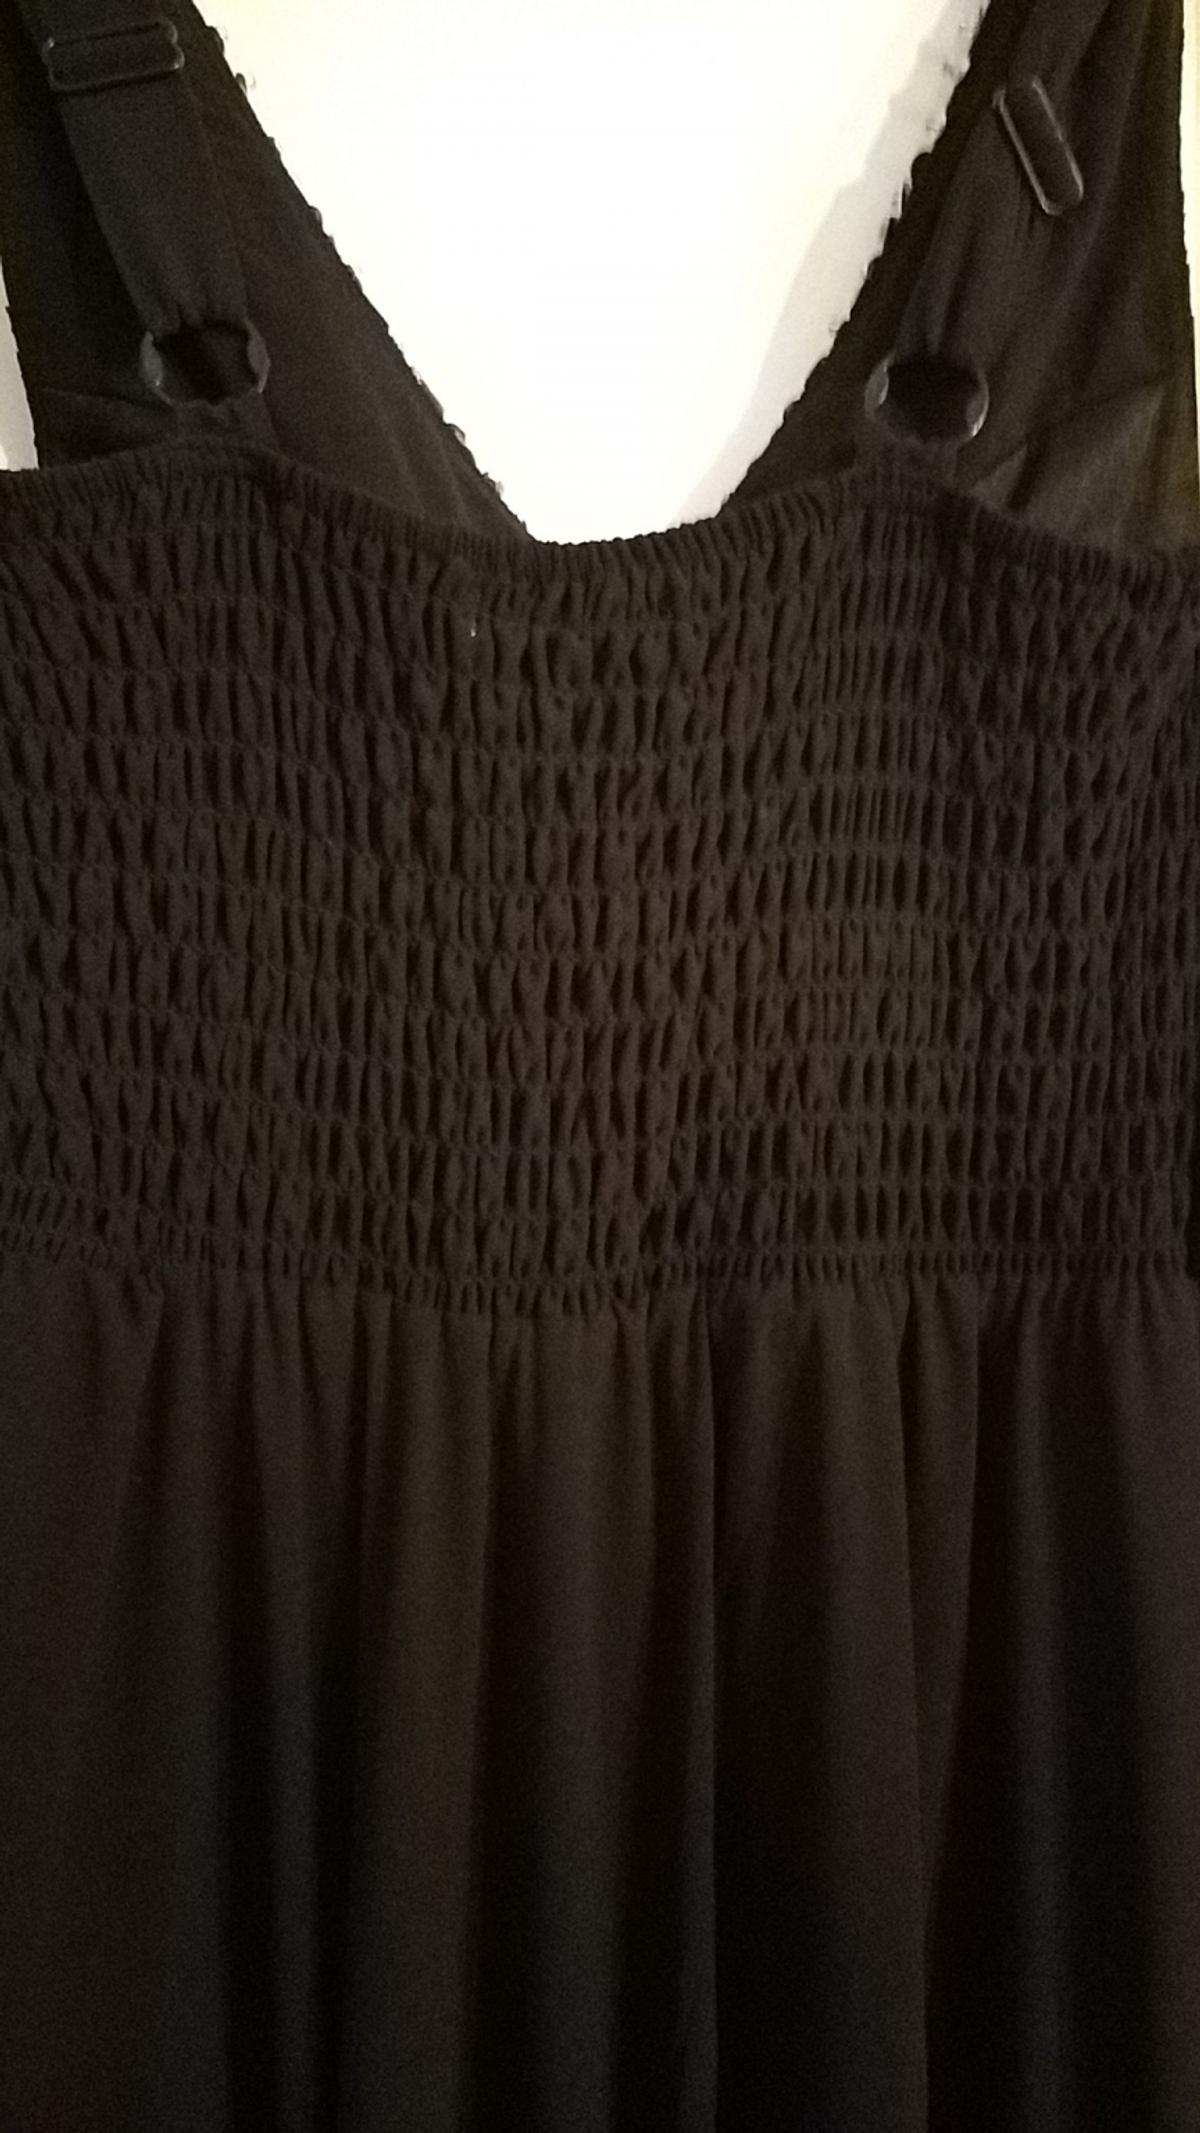 schwarzes kleid in 1220 donaustadt for €30.00 for sale | shpock